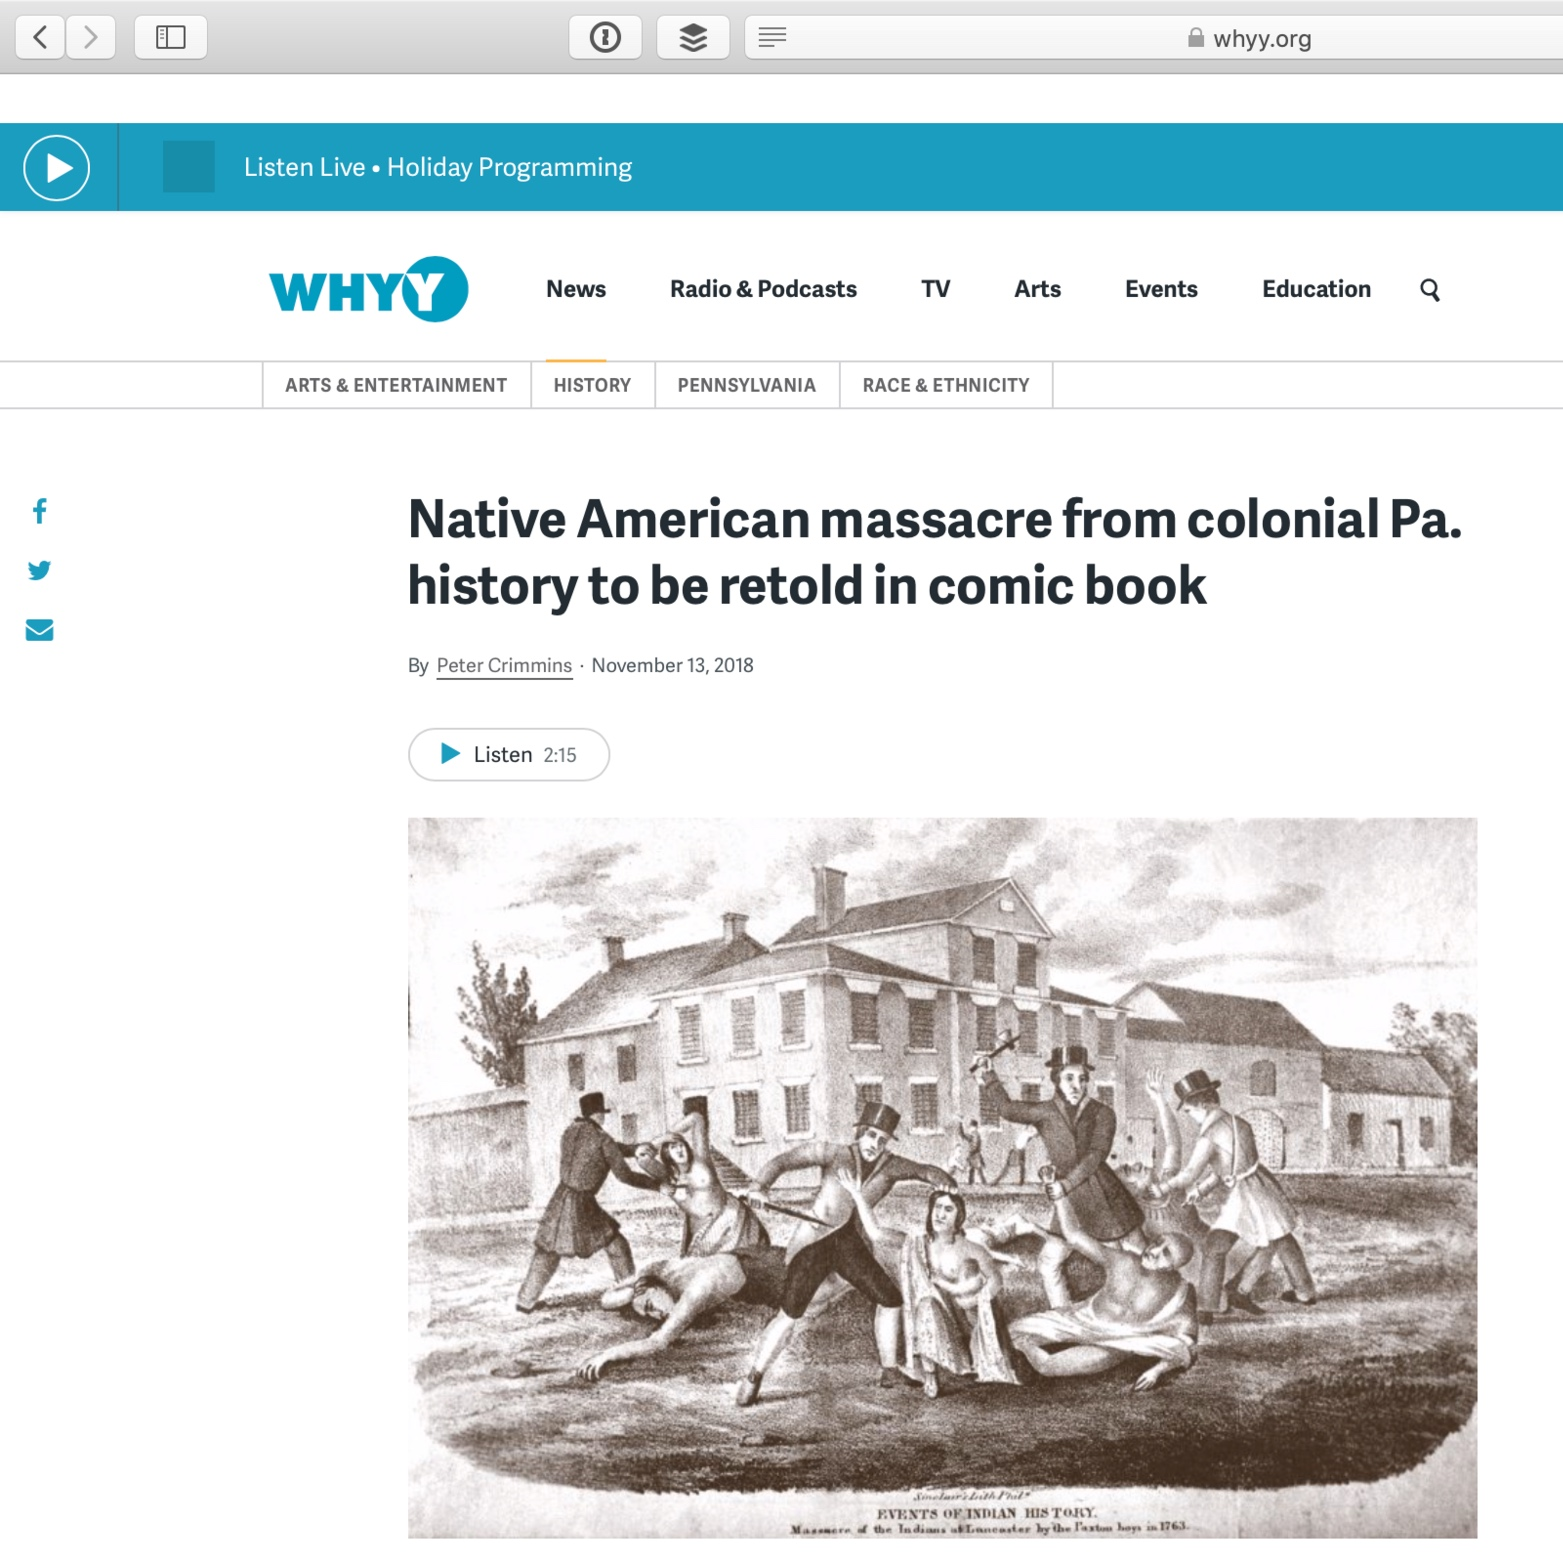 """Native American massacre from colonial Pa. history to be retold in comic book,"" Peter Crimmins, November 13, 2018"